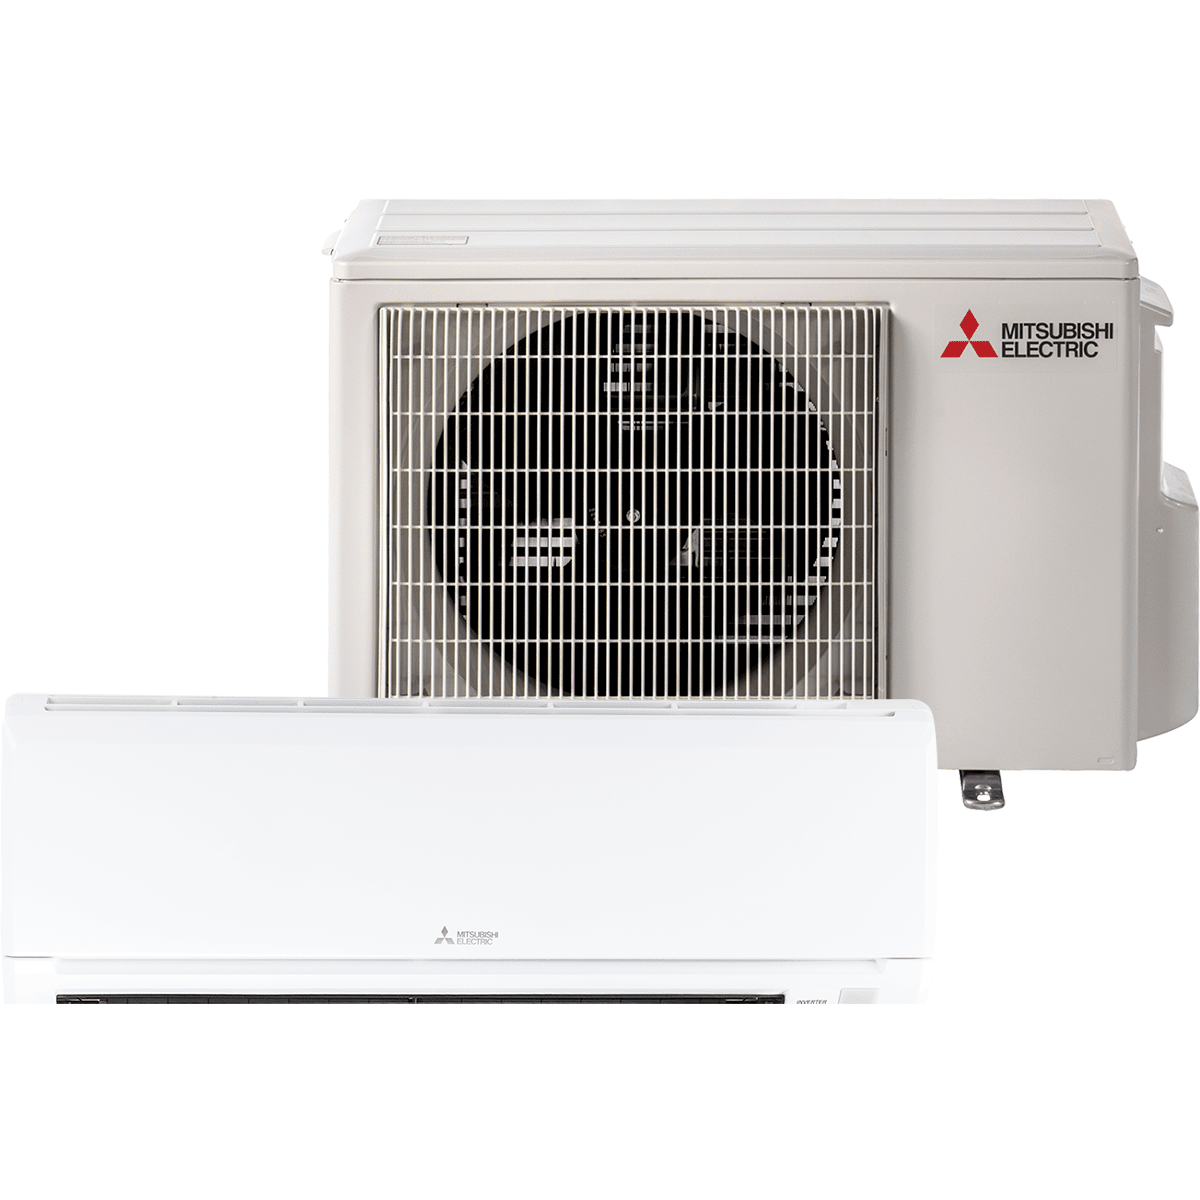 Mitsubishi 12,000 BTU Ductless Mini-Split Heat Pump MZ-GL12NA